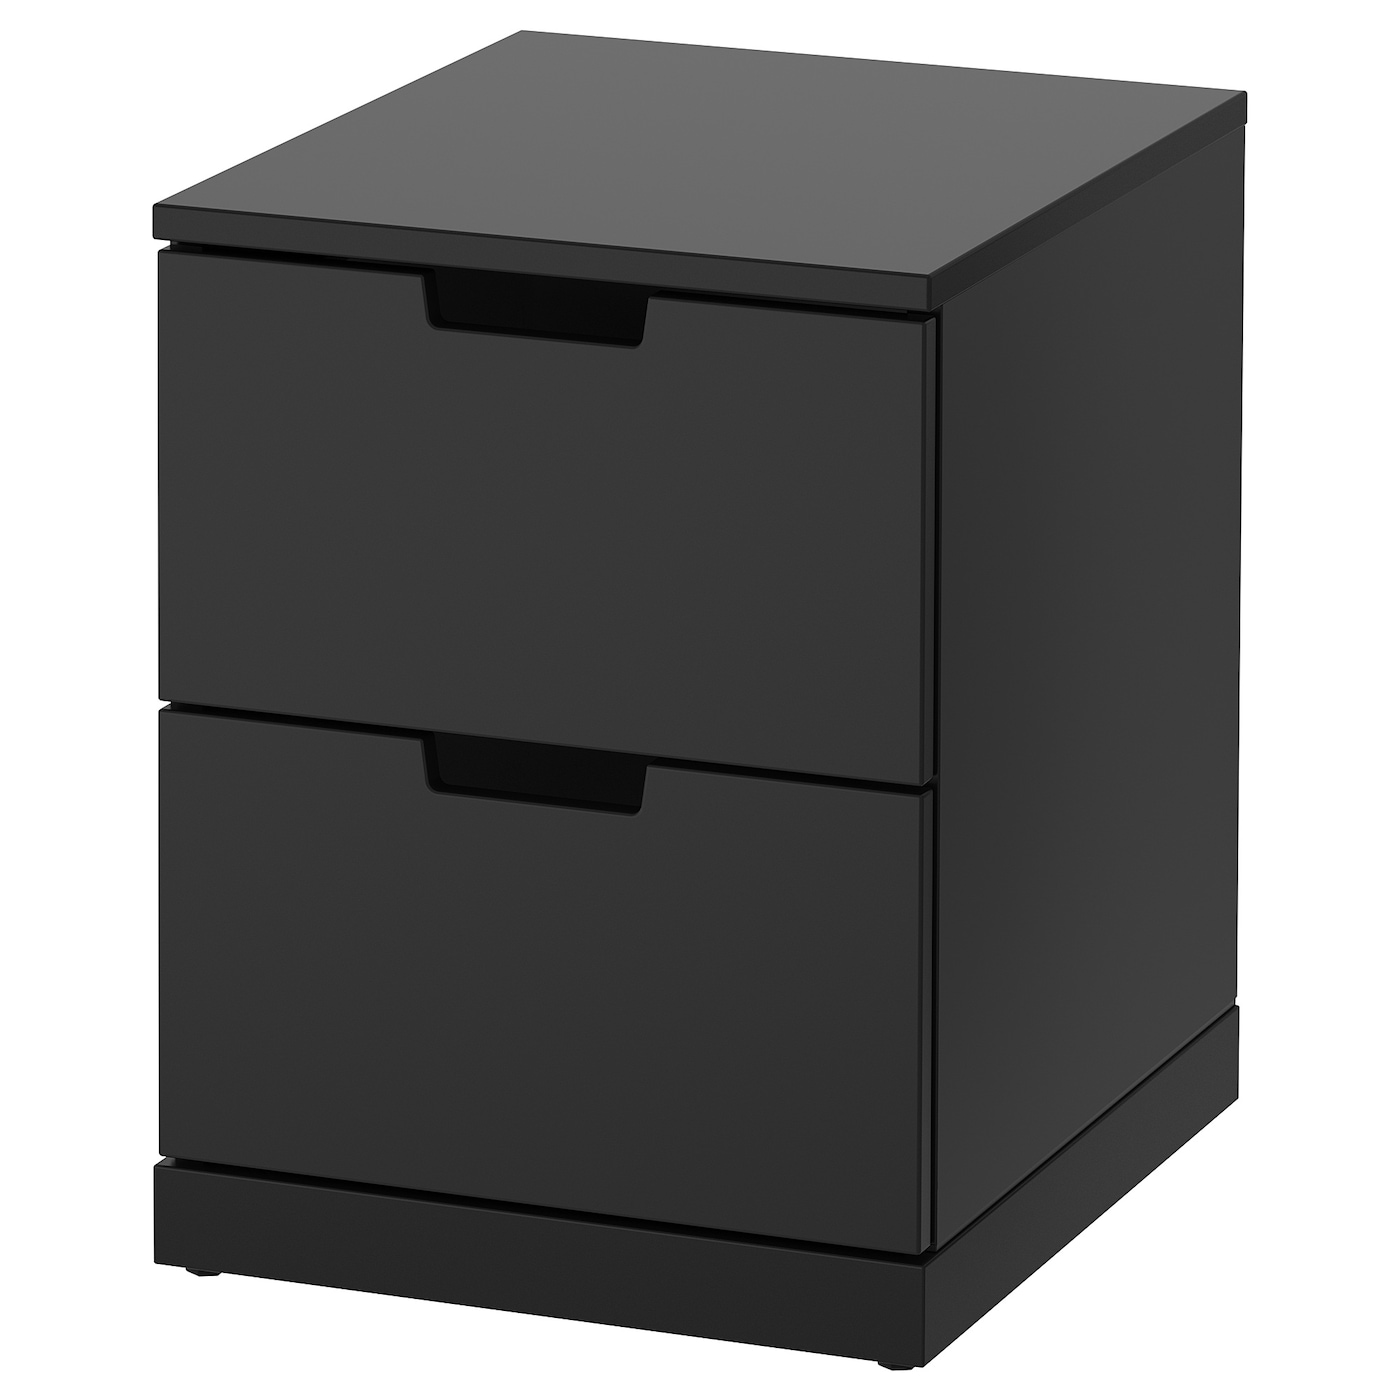 nordli commode 2 tiroirs anthracite 40 x 54 cm ikea. Black Bedroom Furniture Sets. Home Design Ideas